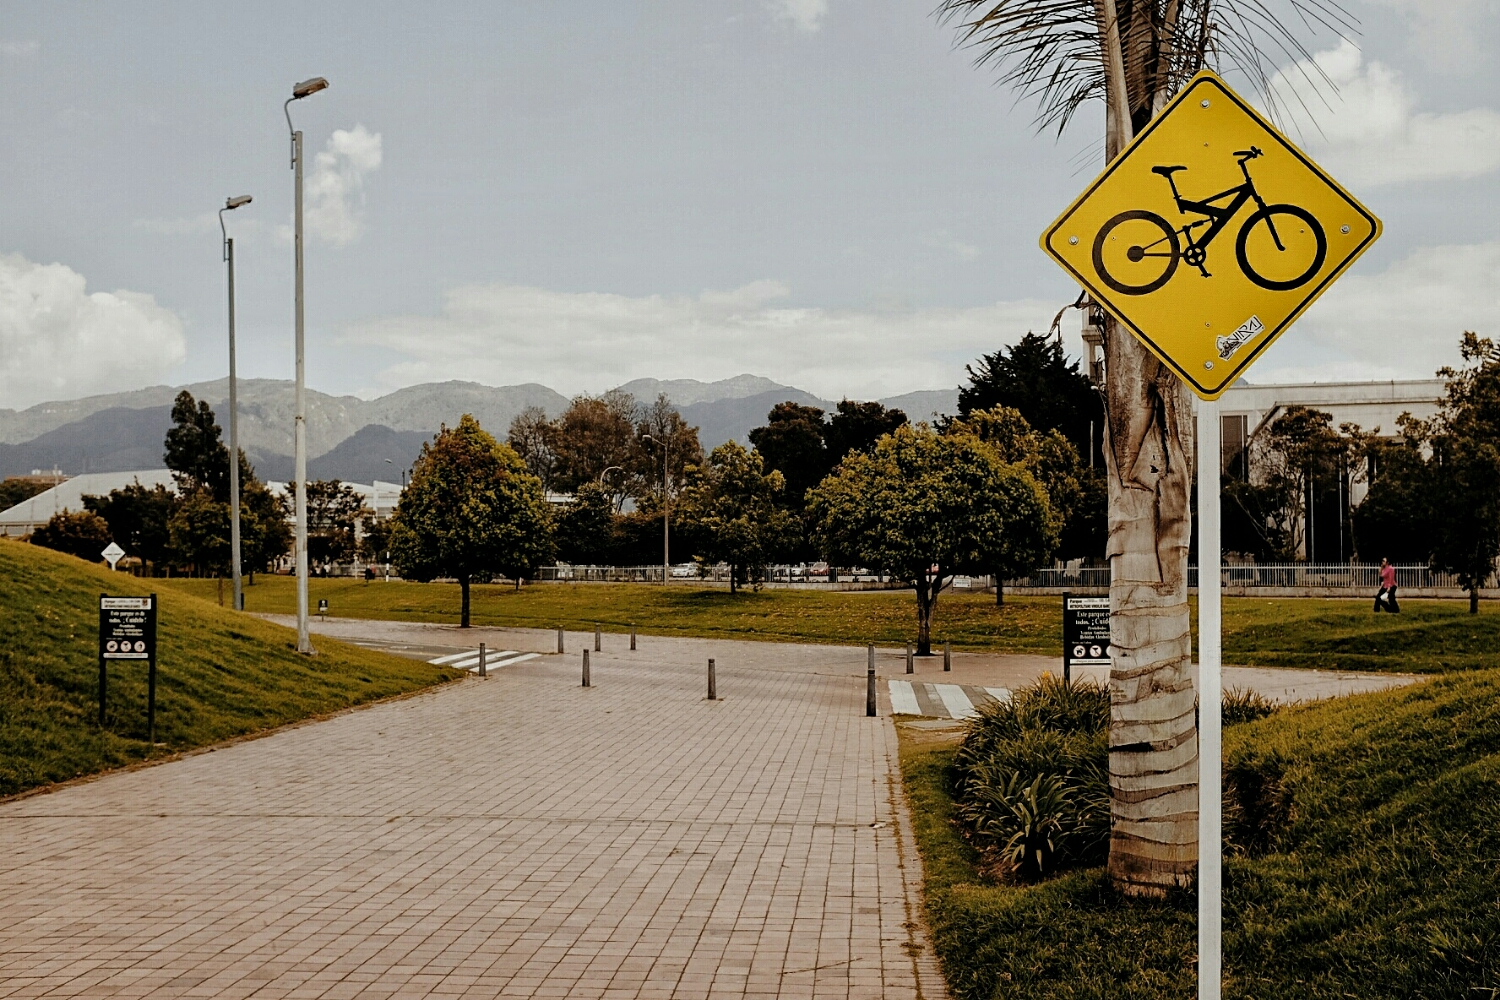 In Bogotá, you have to beware of full suspension bikes.